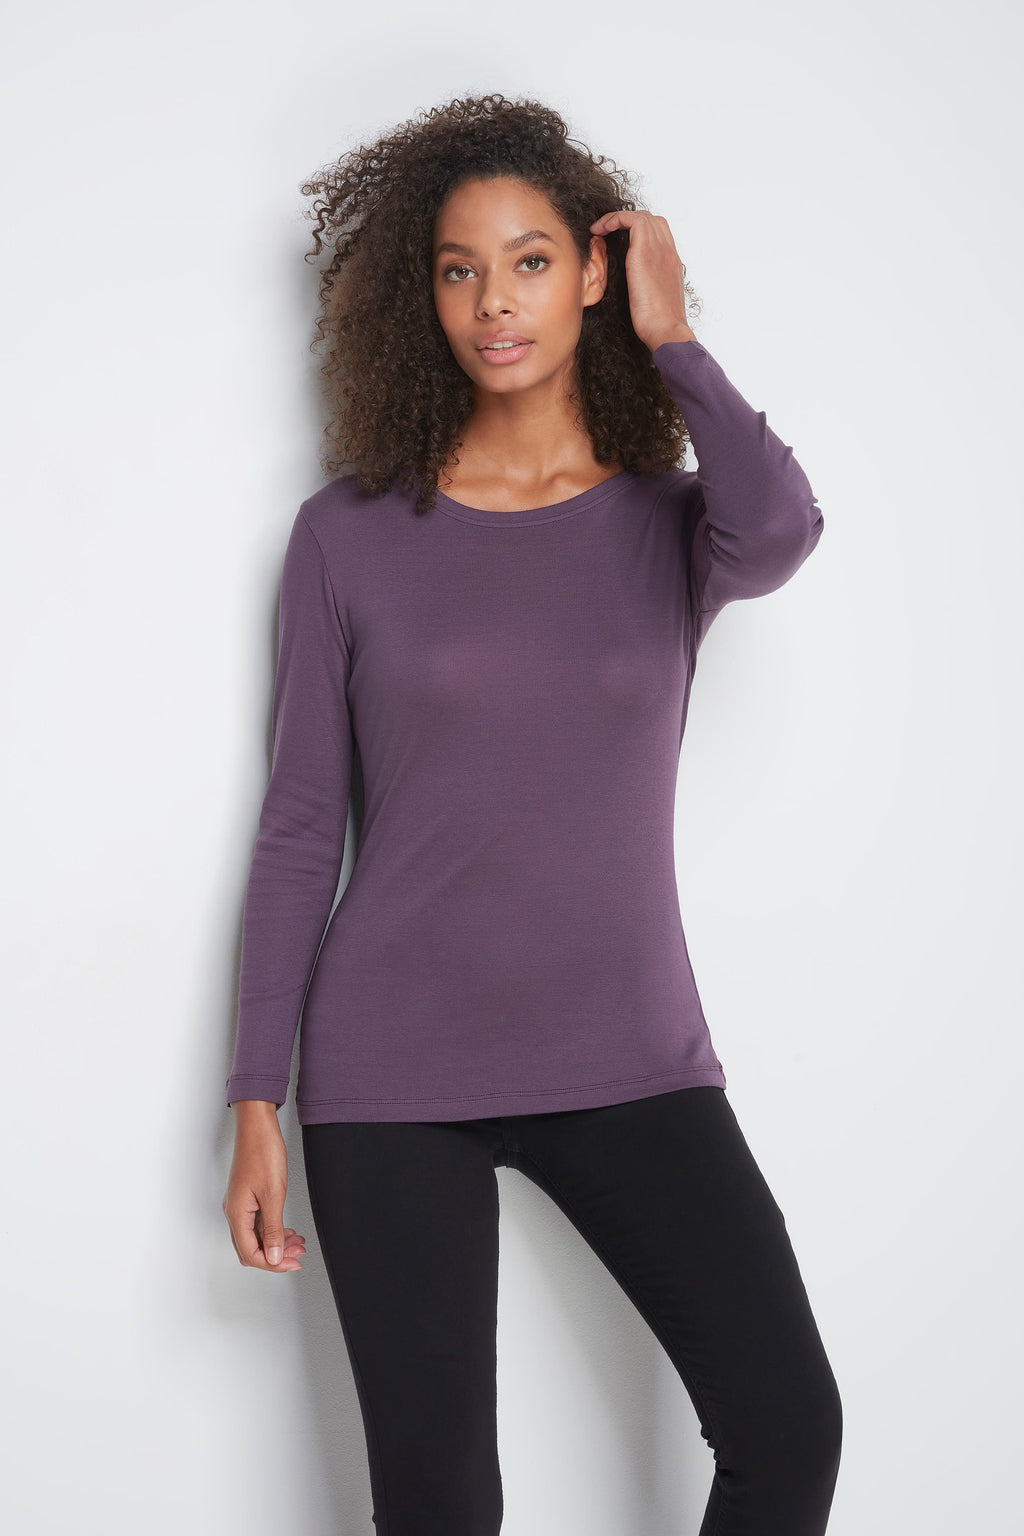 High Quality Long Sleeve Crew Neck T-Shirt - Comfortable Crew Neck T-Shirt - Soft Long Sleeve T-Shirt - Flattering Plum Long Sleeve Crew Neck T-Shirt